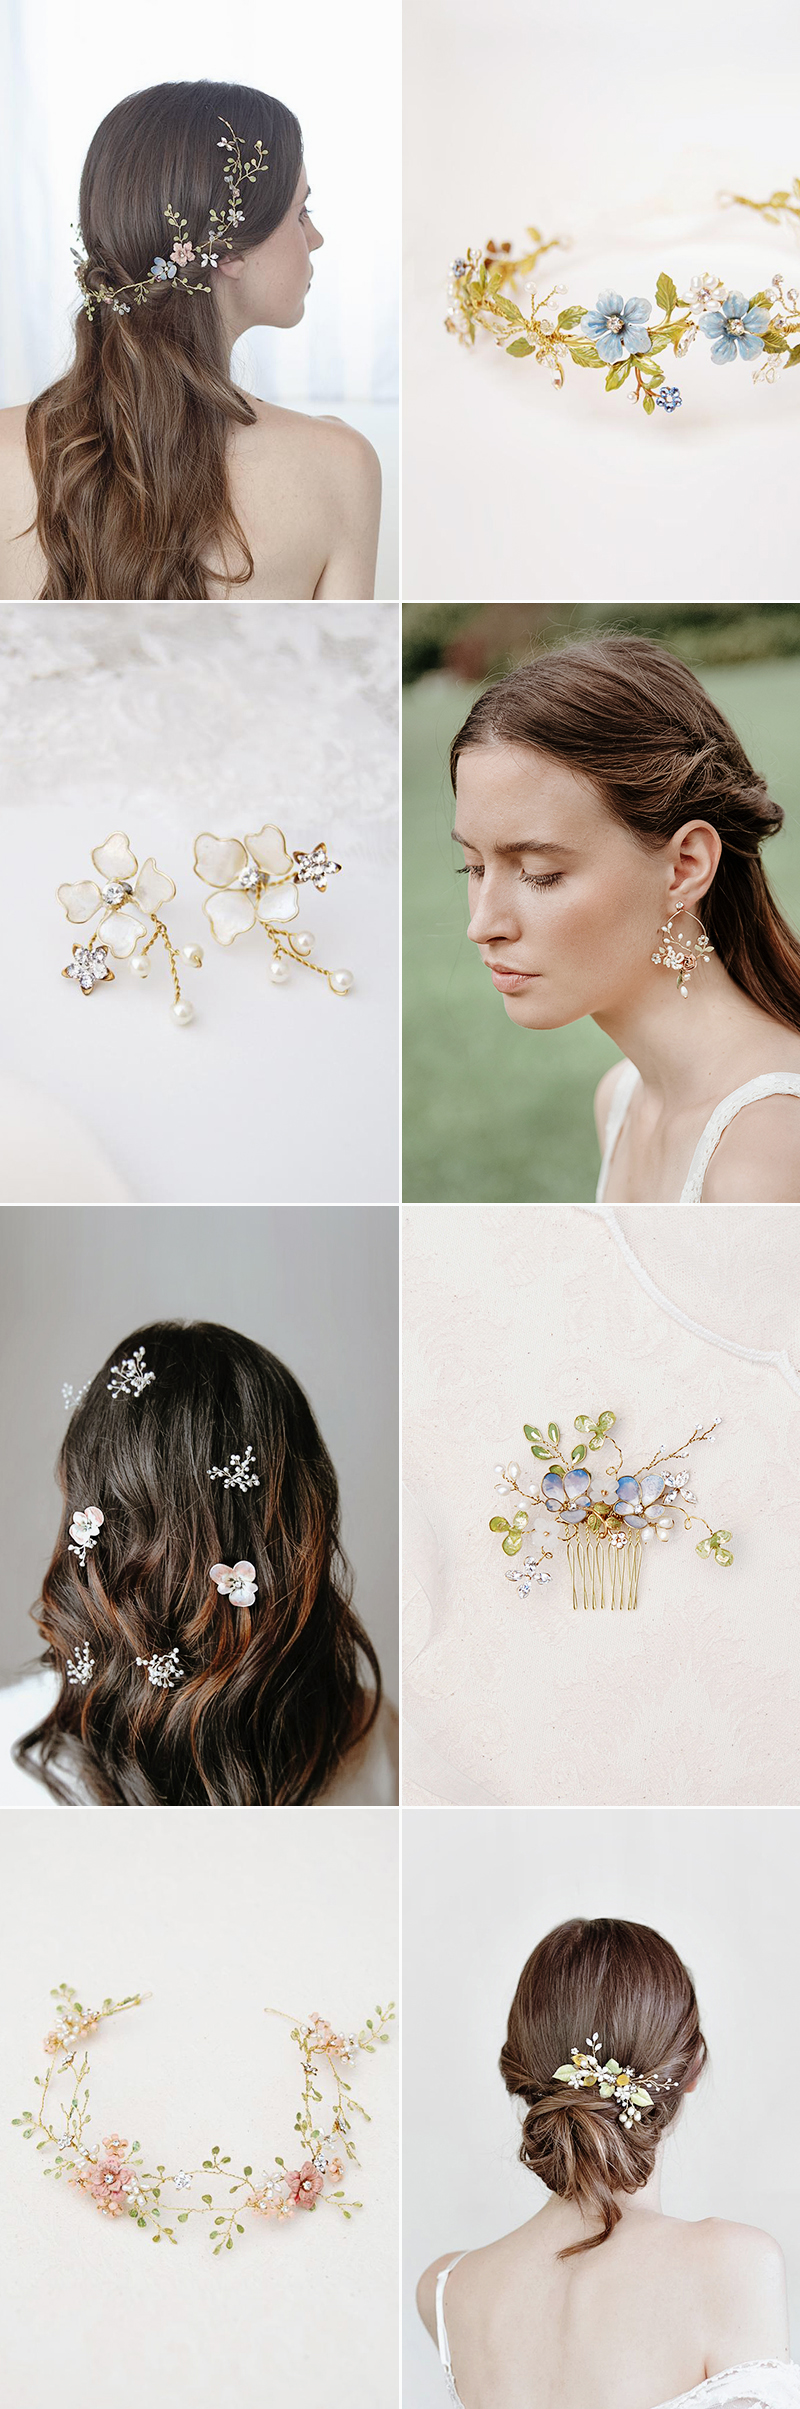 handmade wedding bridal accessories